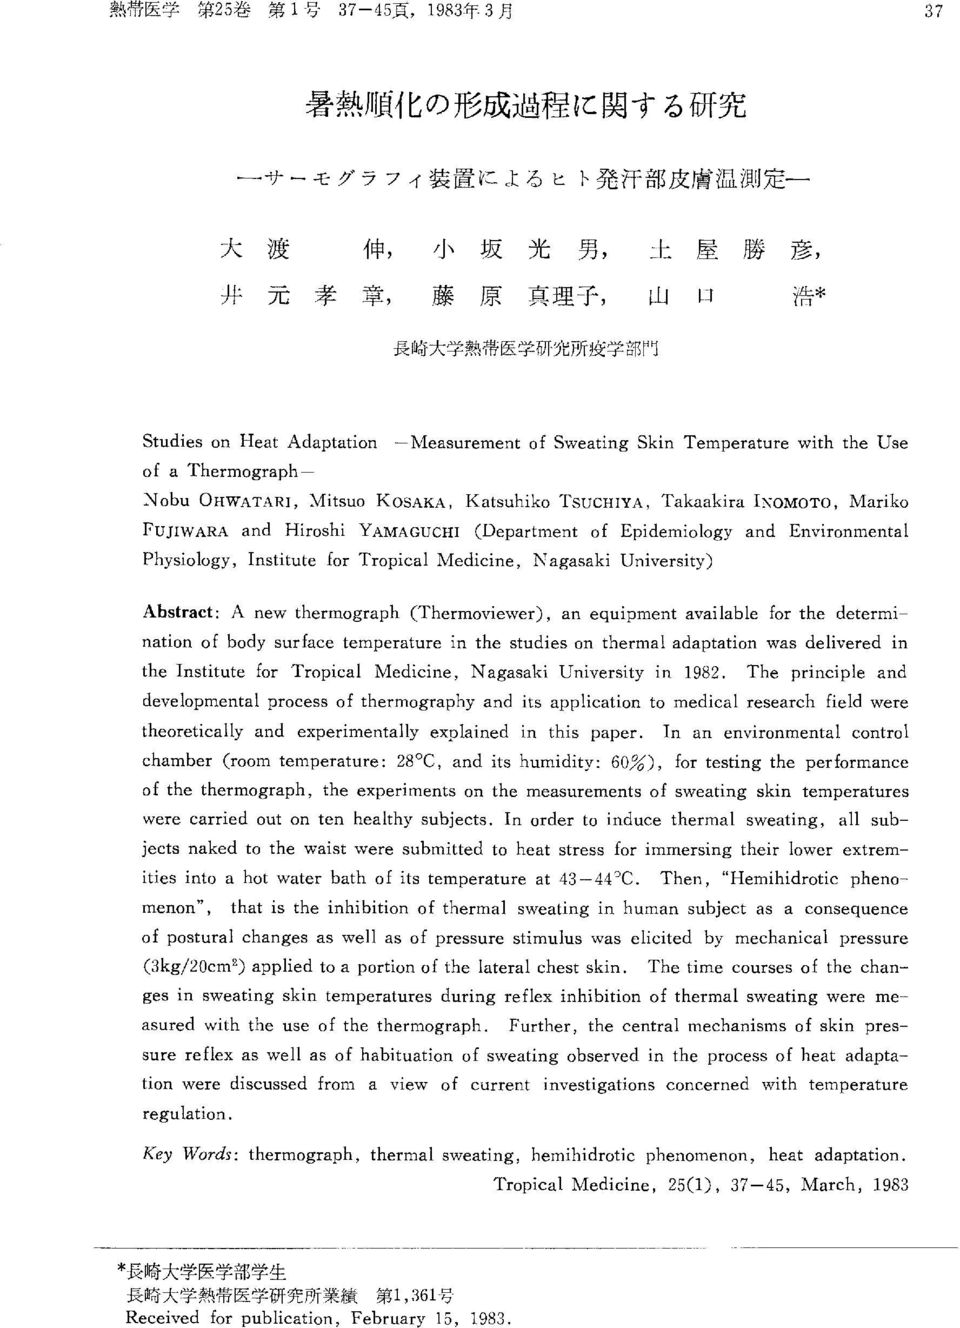 determination of body surface temperature in the studies on thermal adaptation was delivered in the Institute for Tropical Medicine, Nagasaki University in 1982.